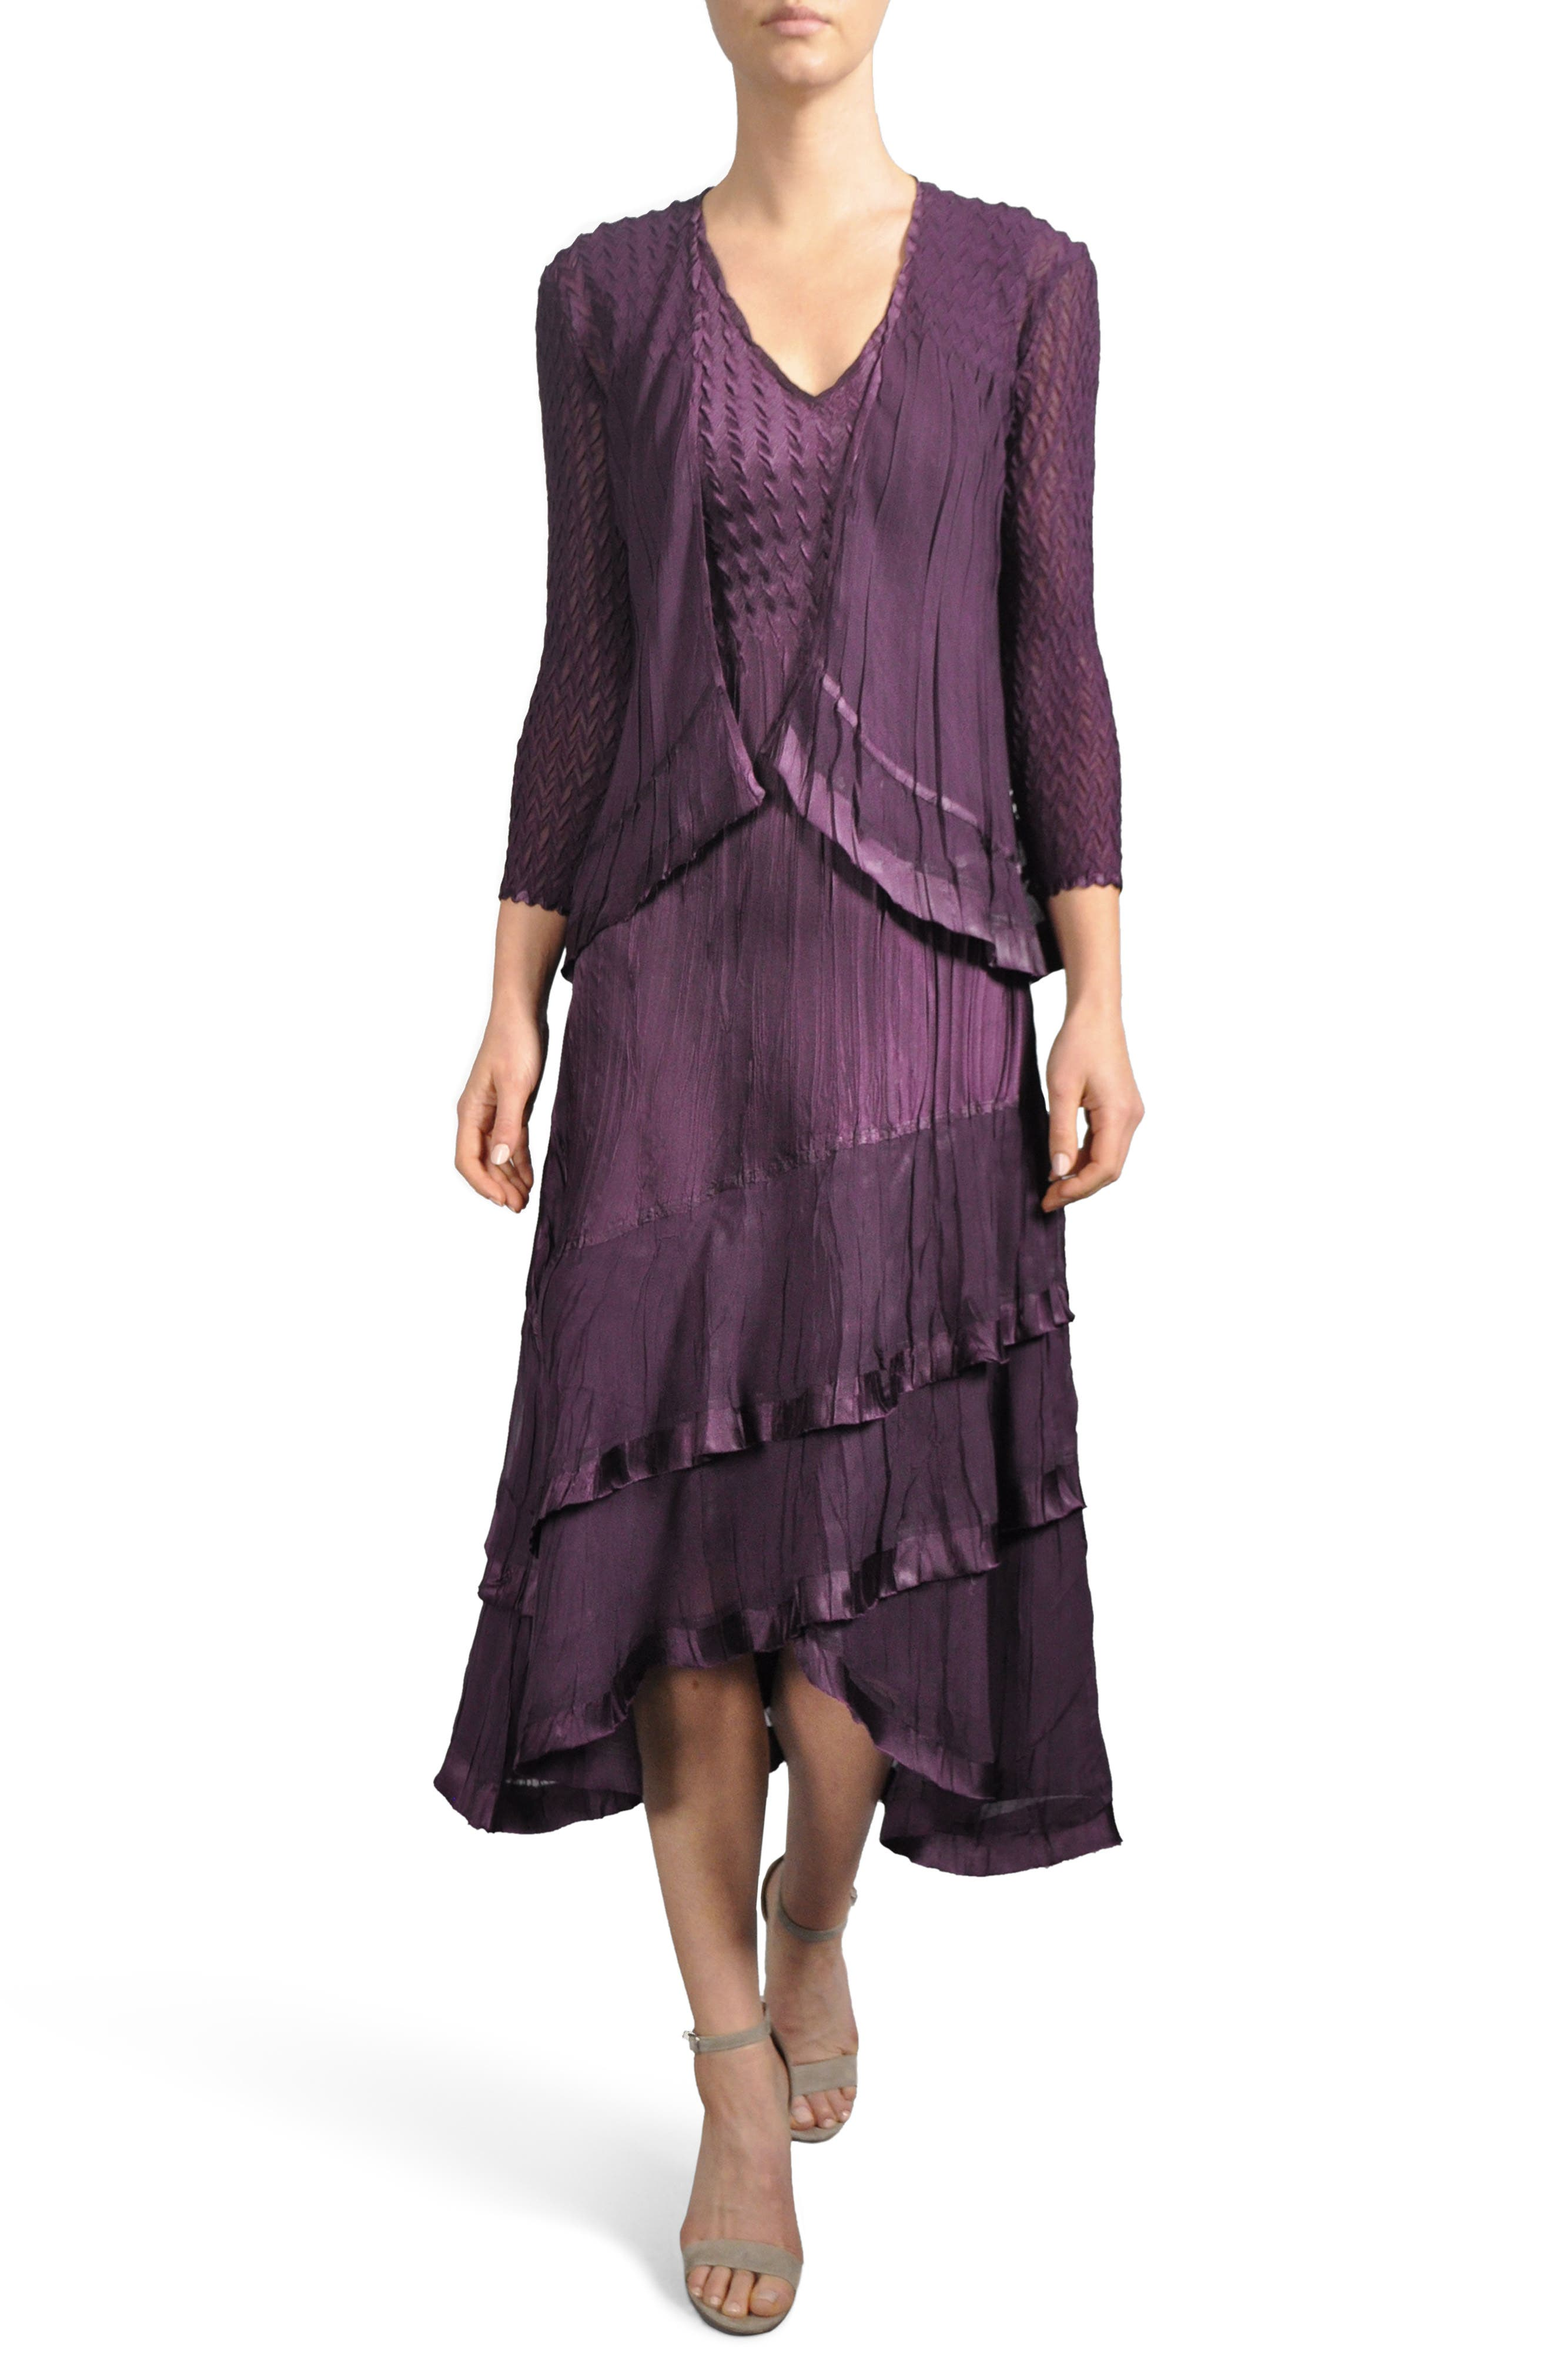 Komorov Textured Tiered Midi Dress with Jacket,                         Main,                         color, 503